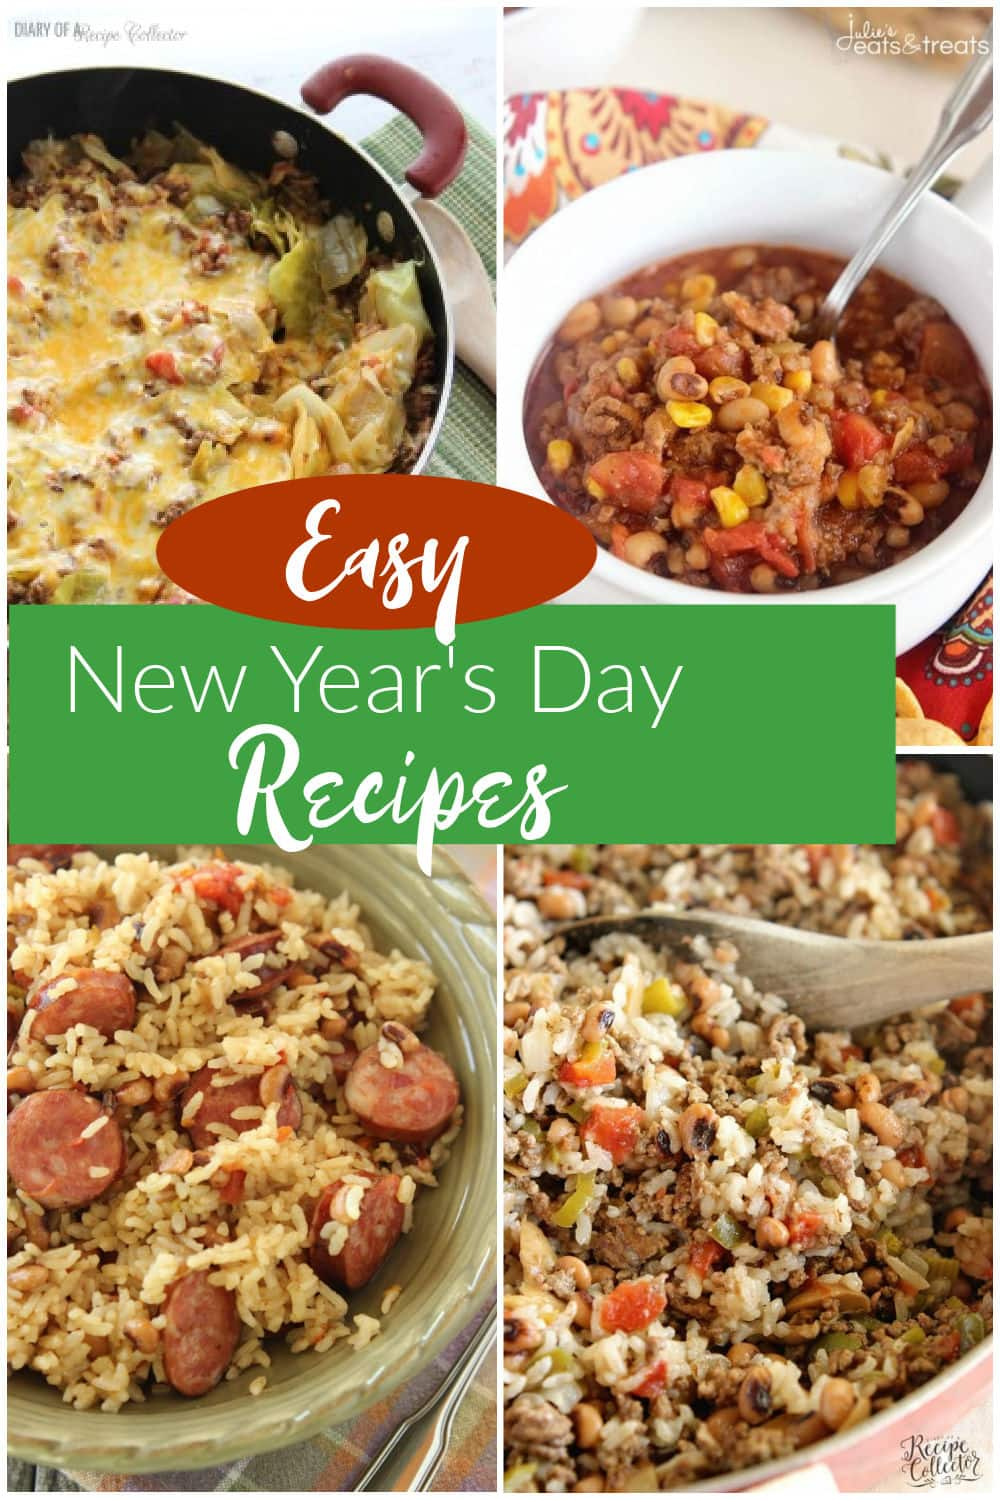 Easy New Year's Day Recipes